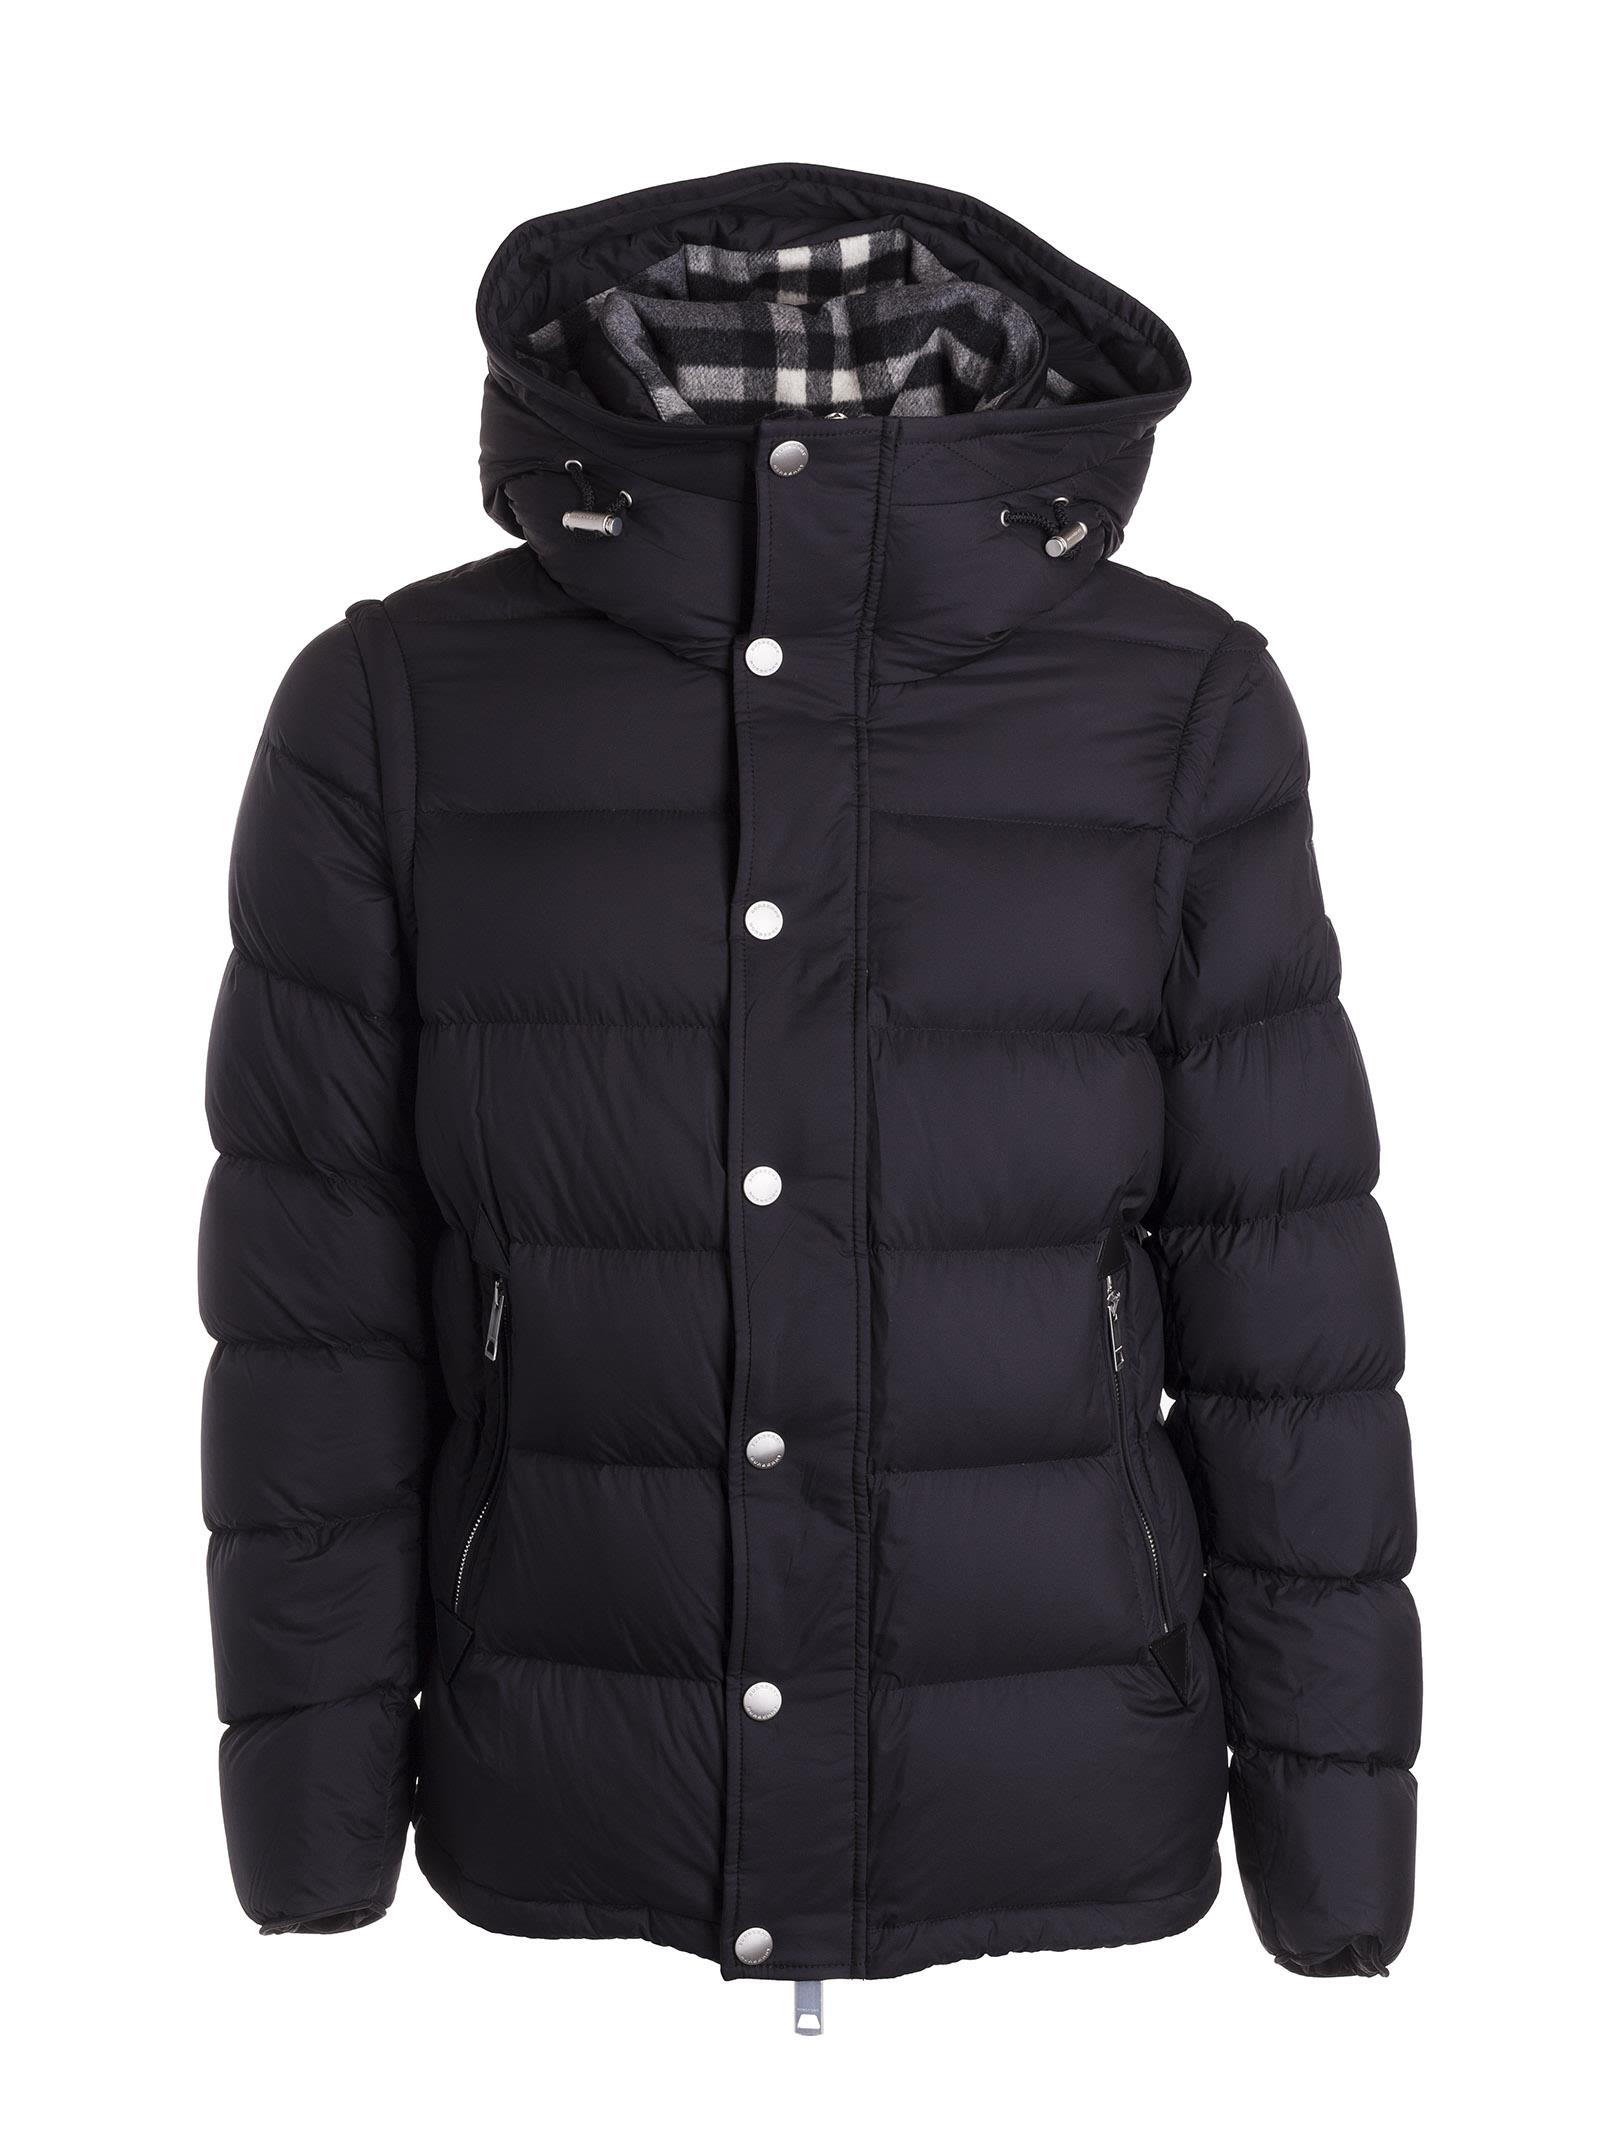 Burberry Hooded Puffer Padded Jacket